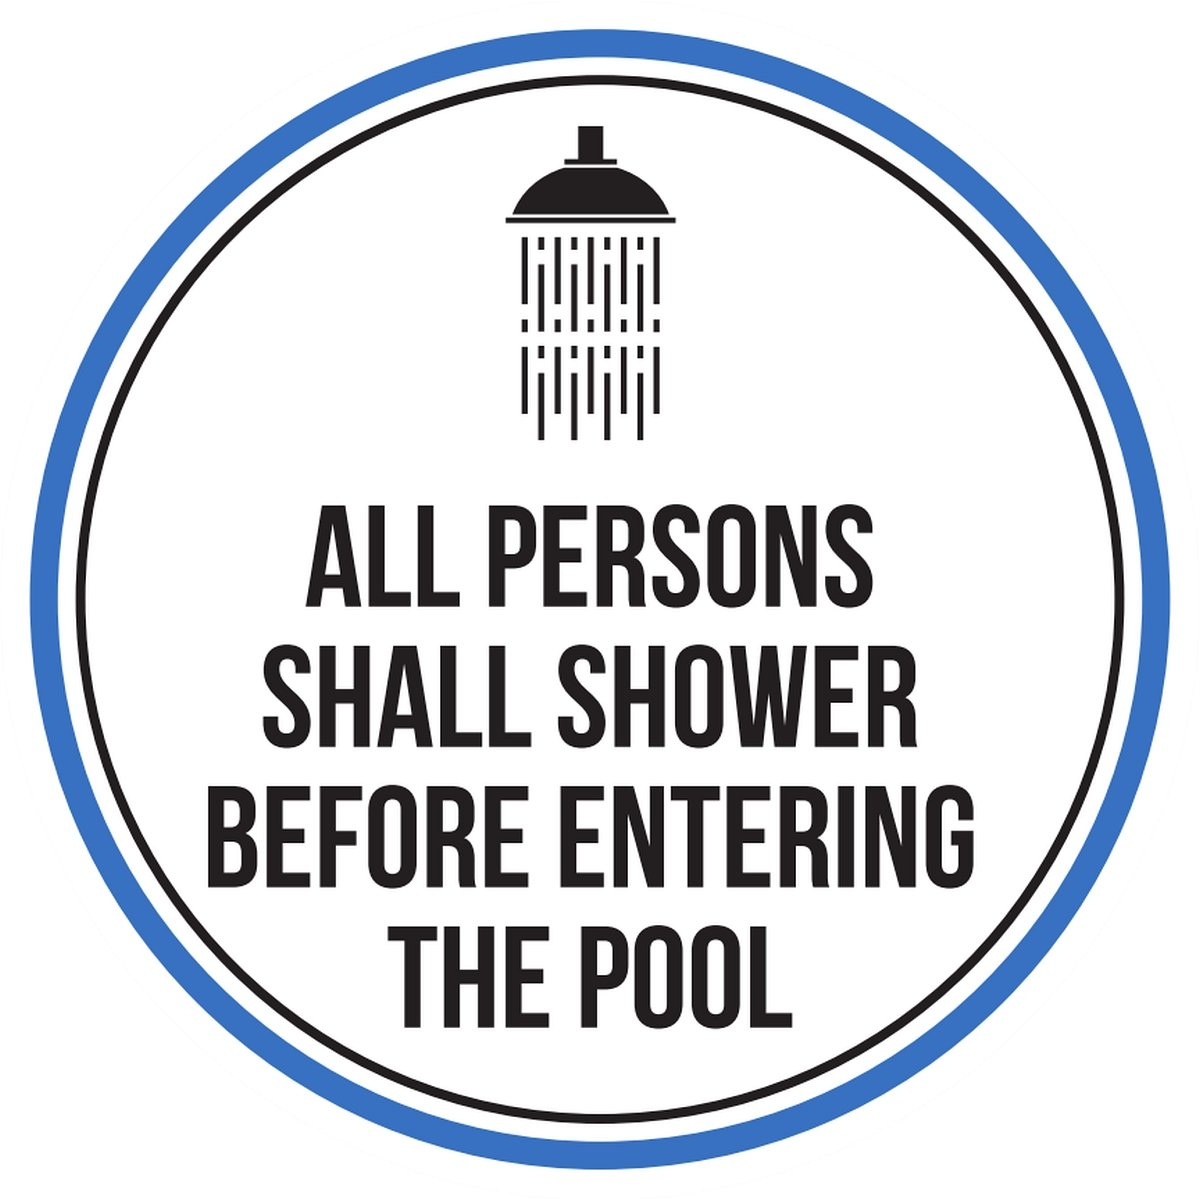 All Persons Shall Shower Before Entering The Swimming Pool Spa Warning Round Sign, Plastic - 9 Inch